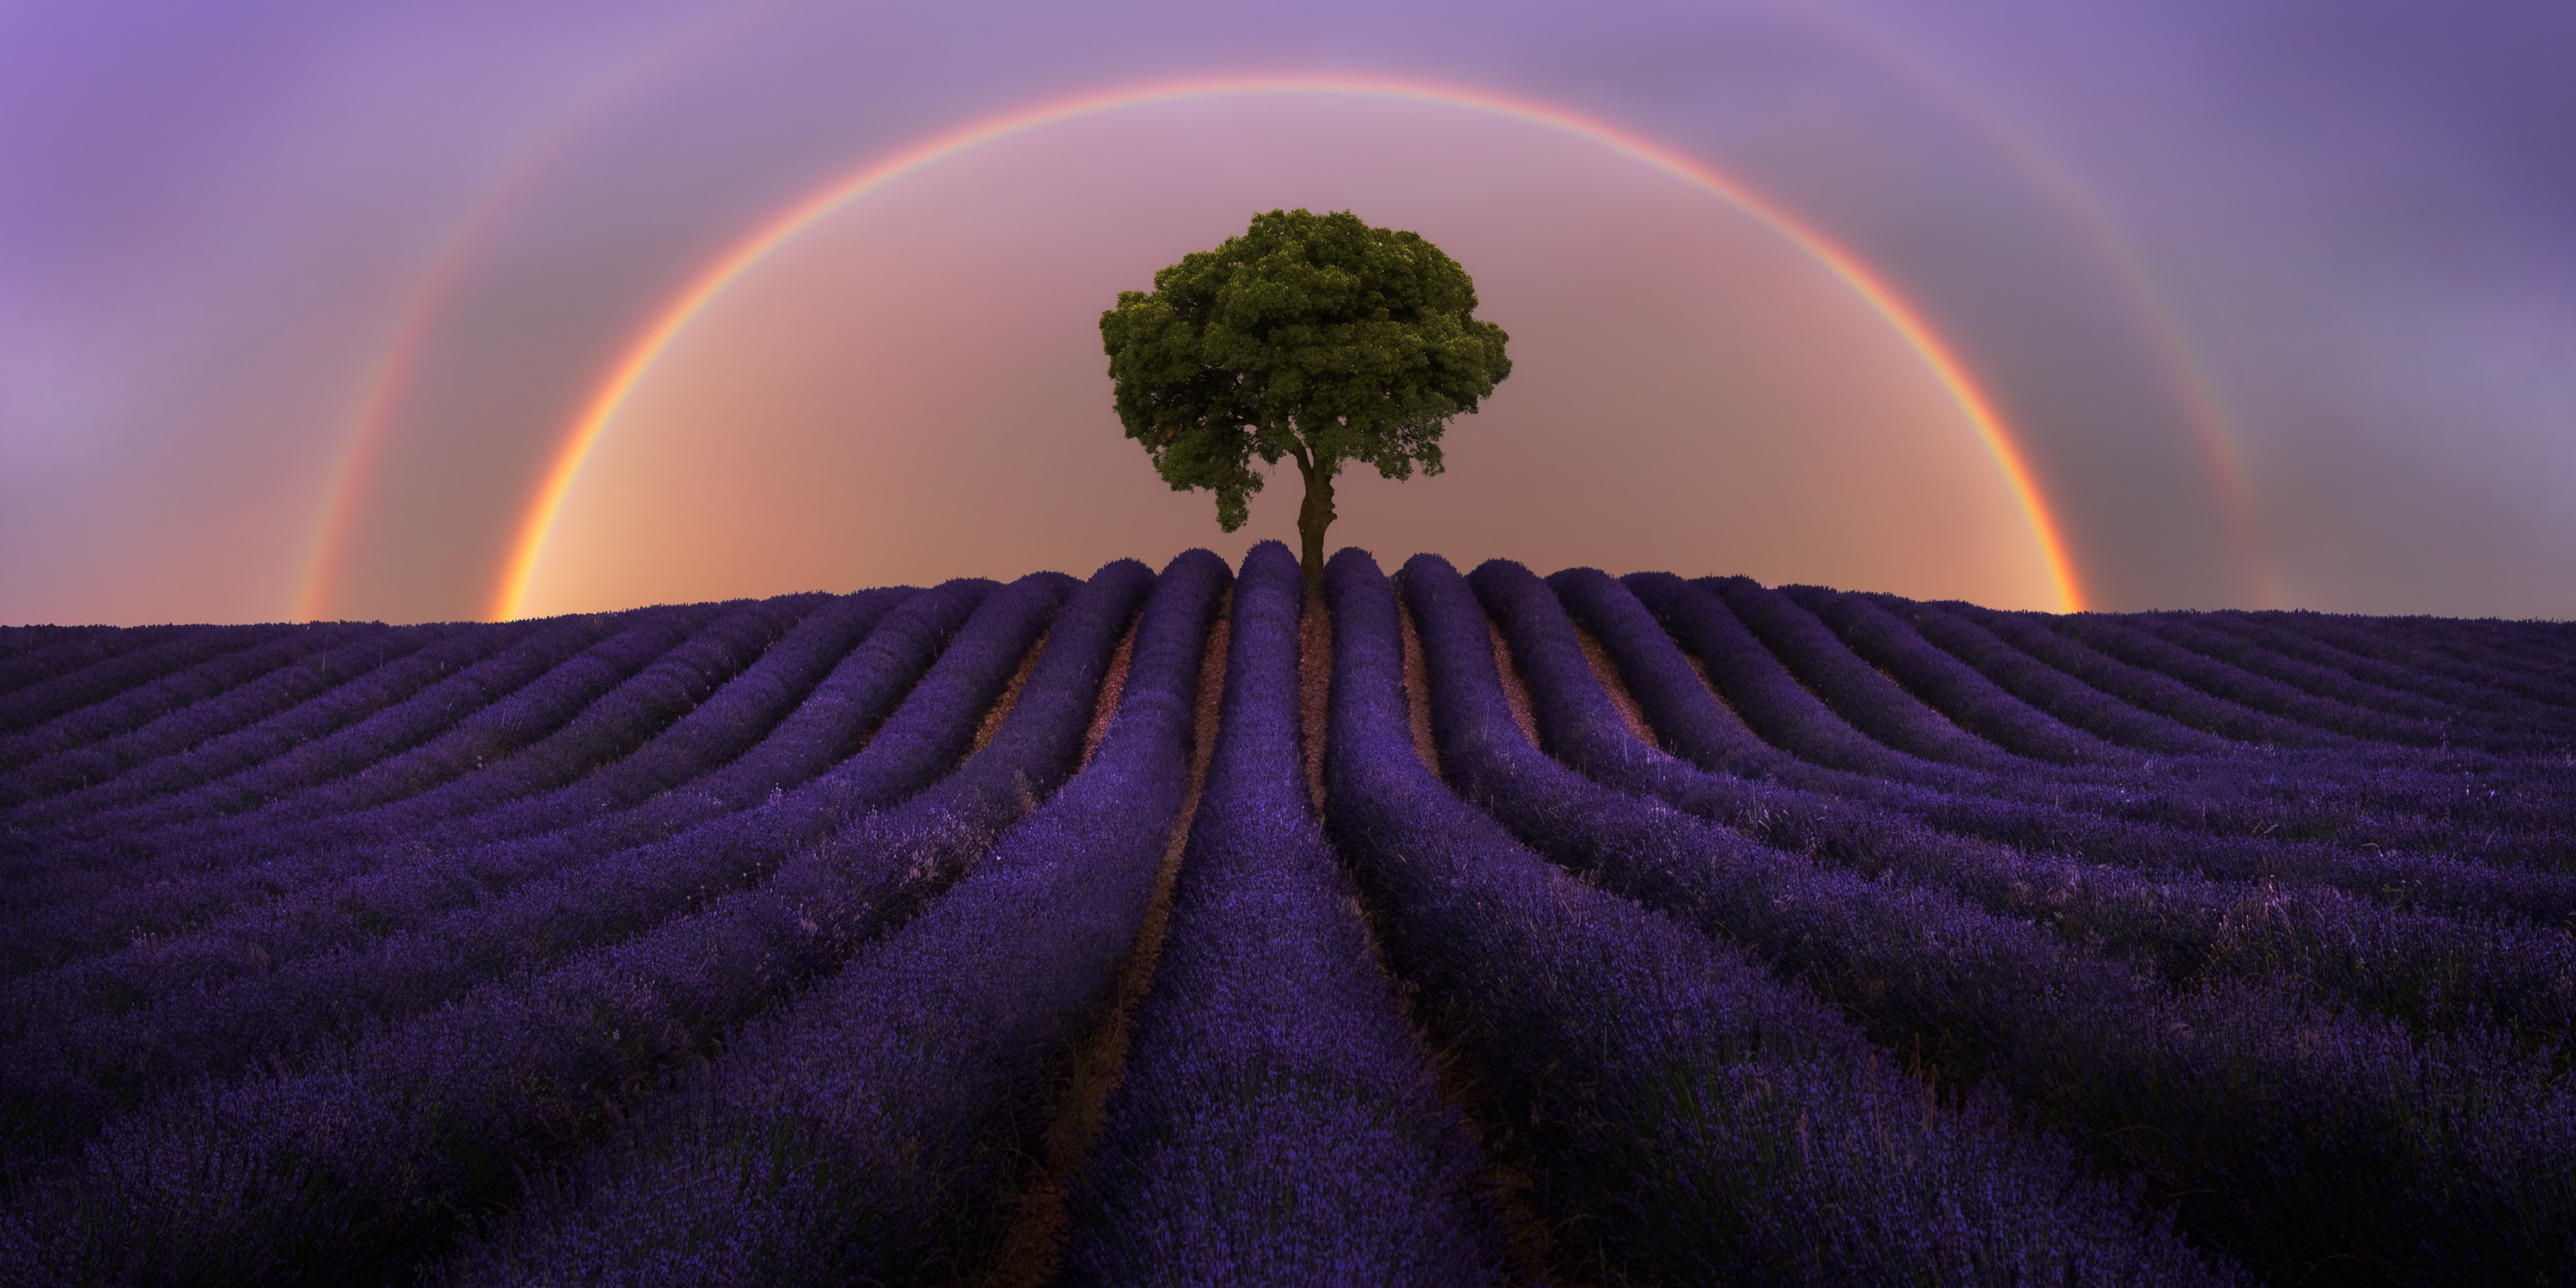 A fine art photograph of two rainbows rising above a single tree in a field with rows of purple plants